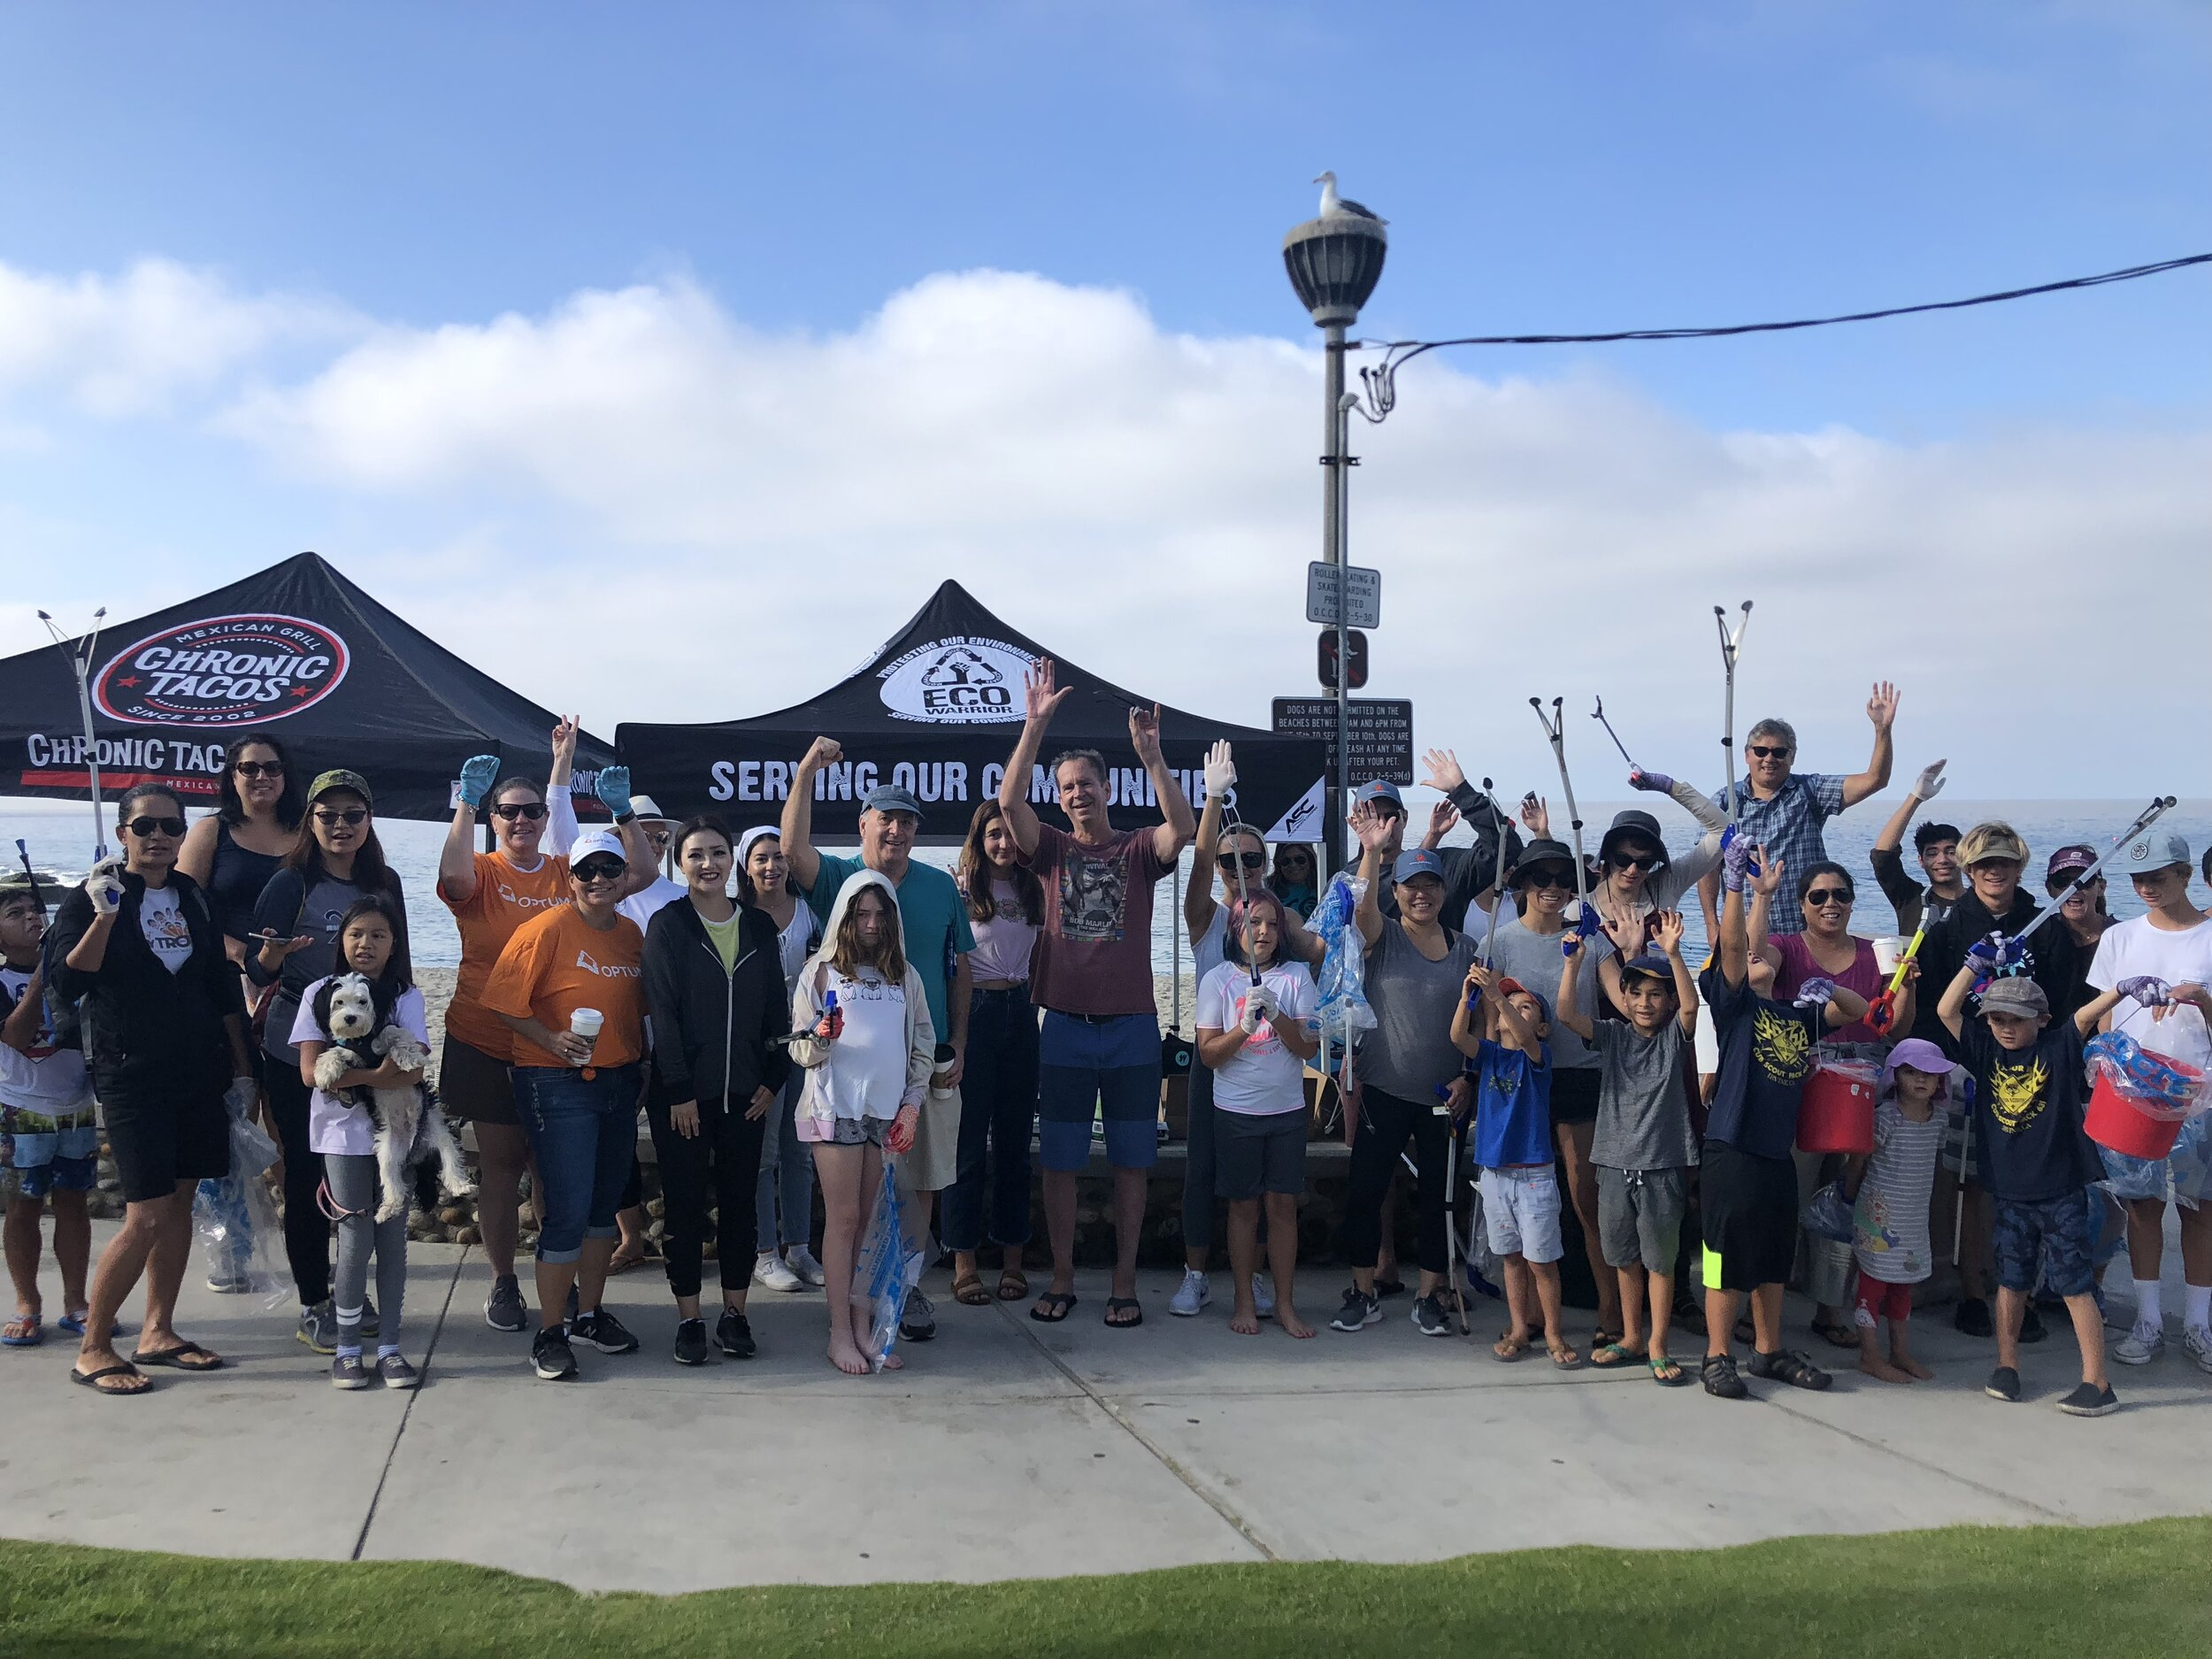 COASTAL CLEANUP DAY A SUCCESS - The ECO Warrior Foundation hosted it's 50th and 51st cleanup simultaneously on International Coastal Cleanup Day at Aliso Beach in Laguna Beach, Ca and Lake Merritt in Oakland, Ca…